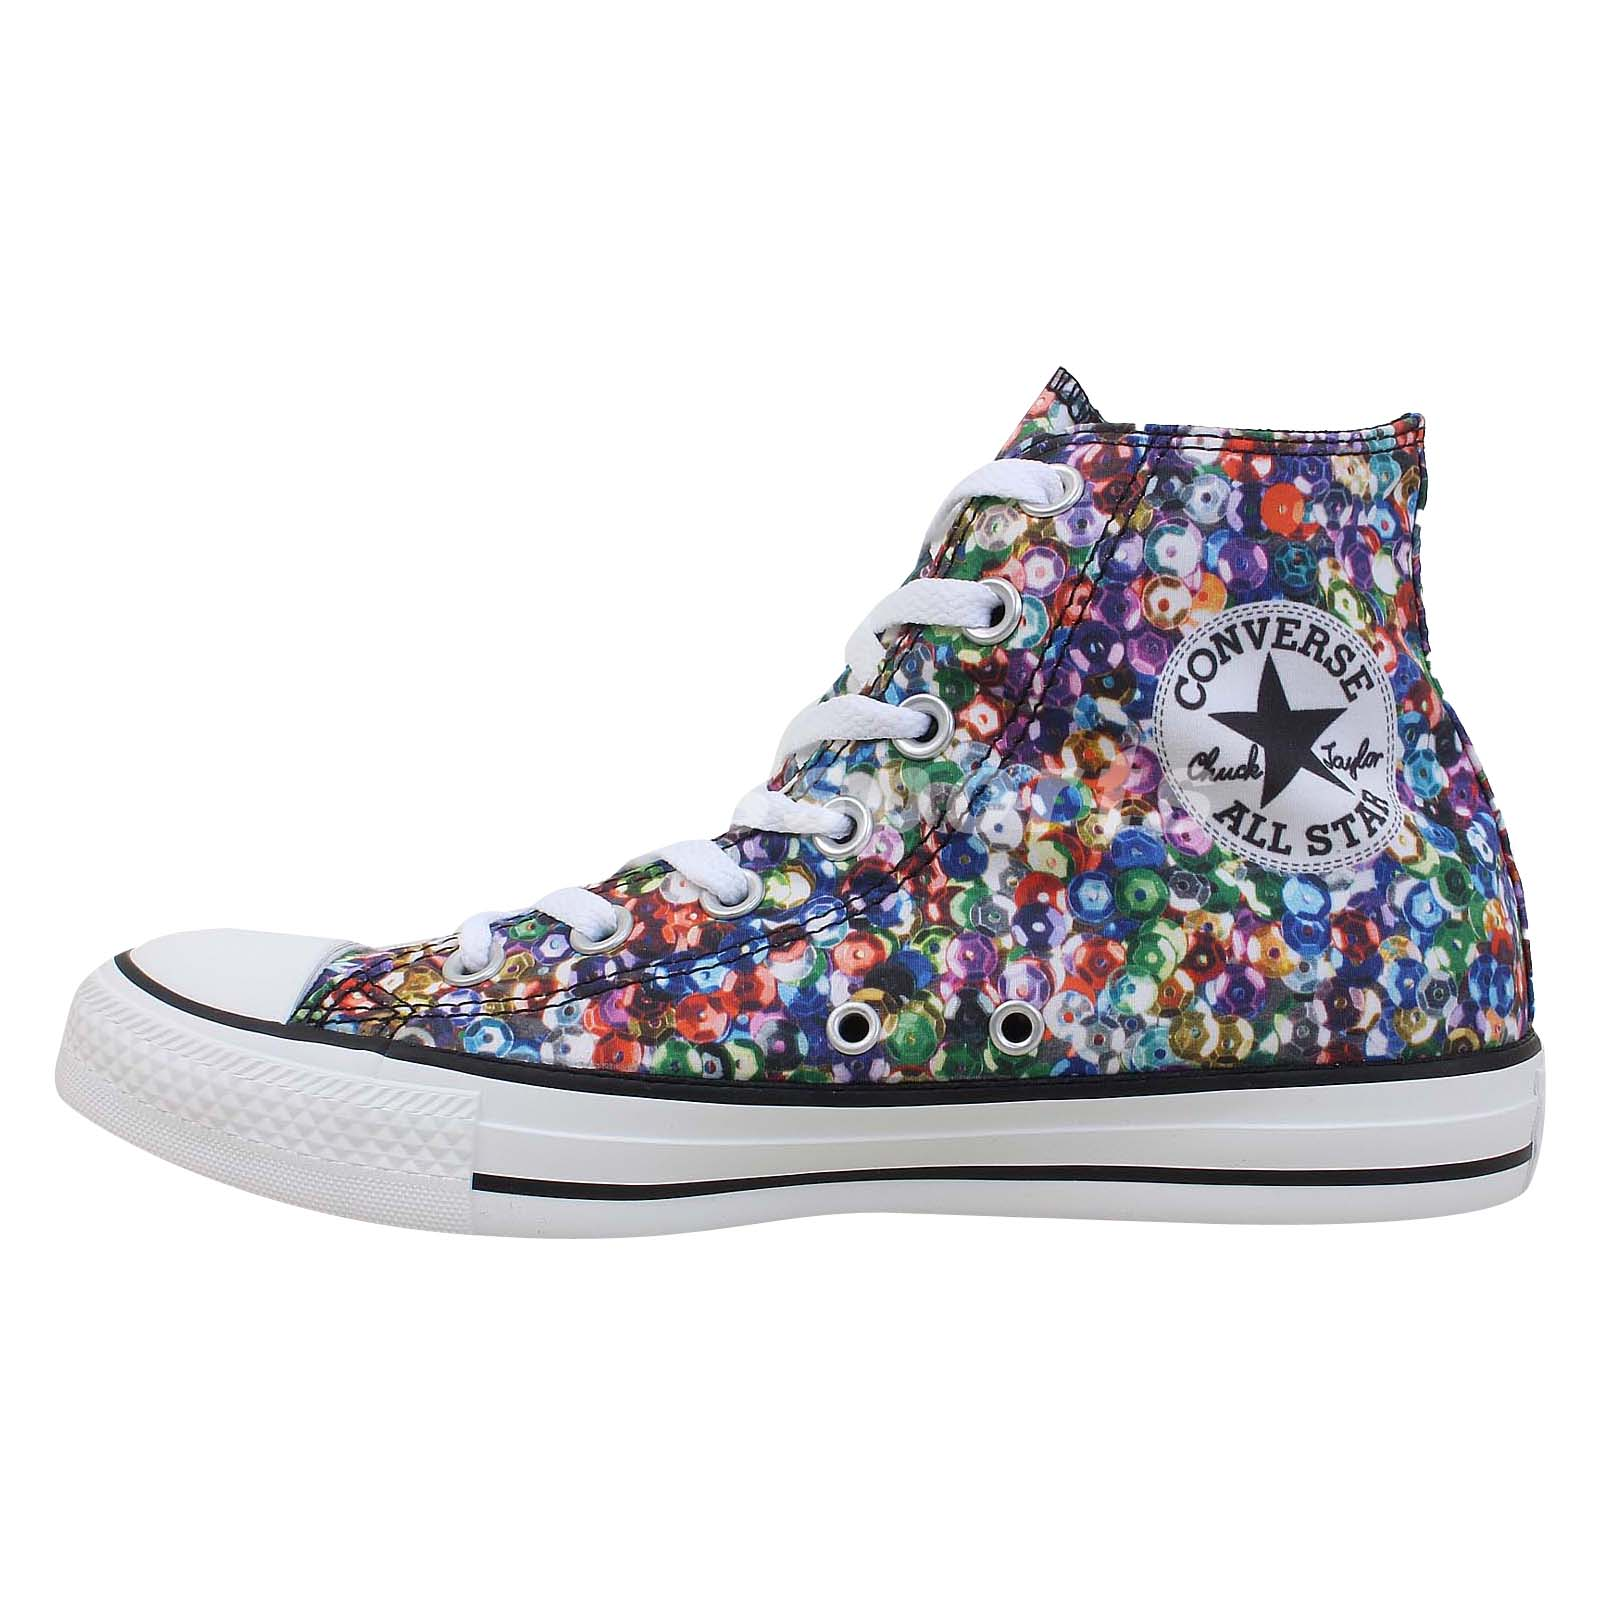 converse chuck taylor all star paillette print 2014 womens casual shoes 542476c ebay. Black Bedroom Furniture Sets. Home Design Ideas